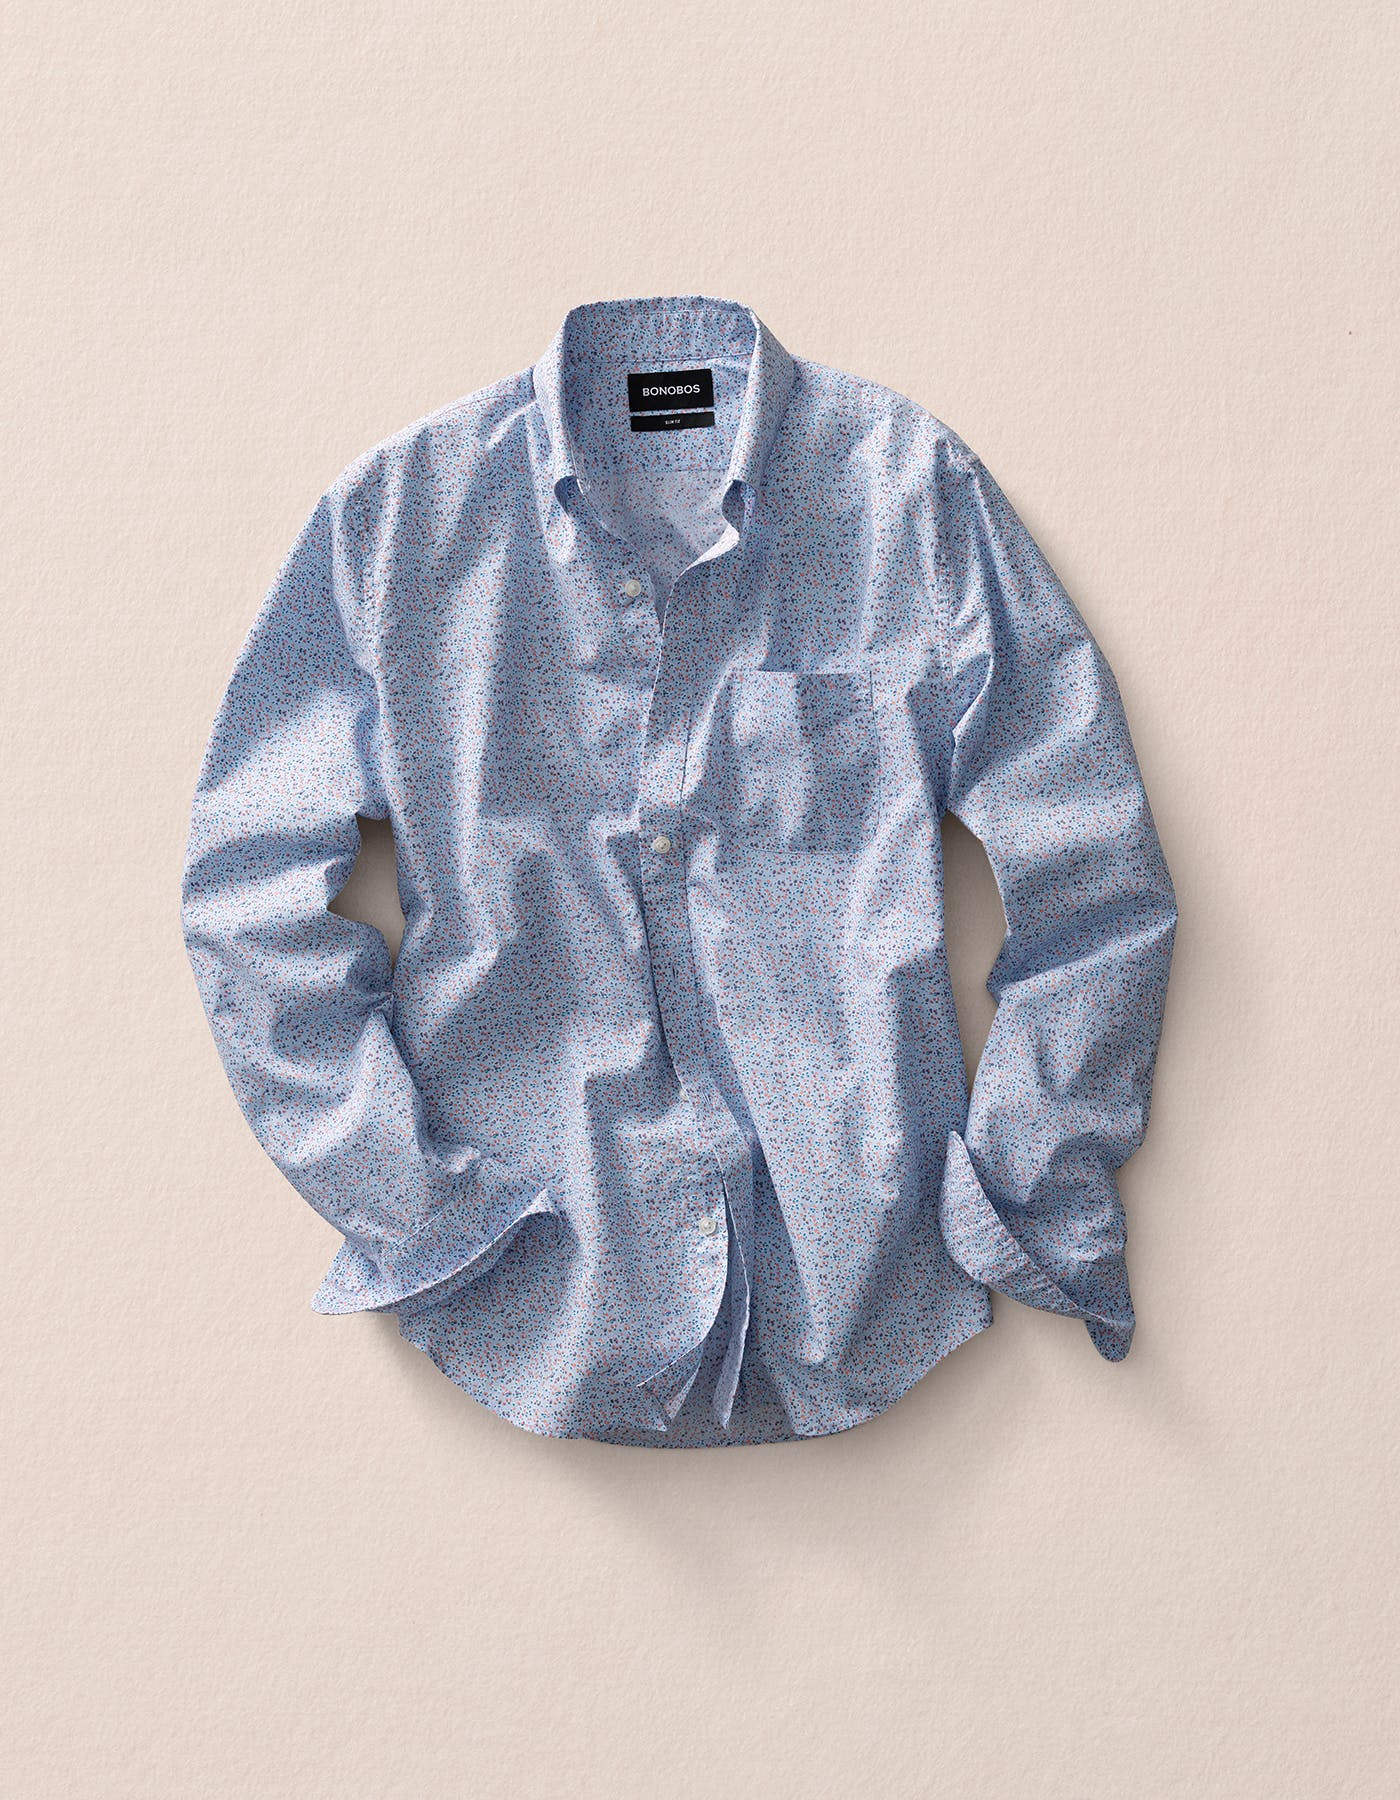 Image of a blue patterned long sleeve shirt